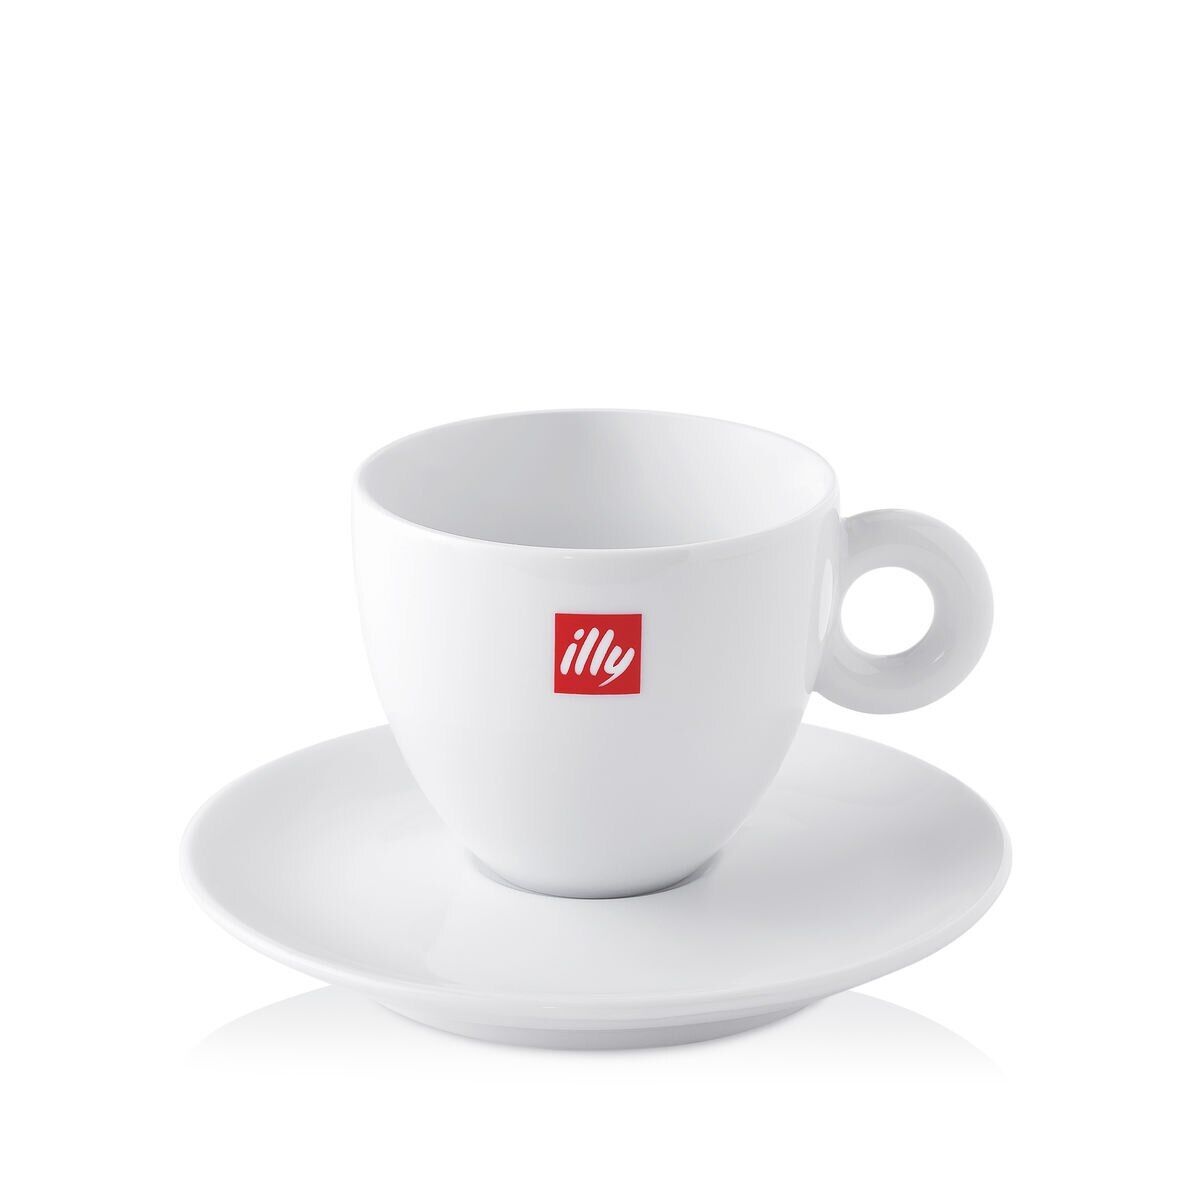 illy Trio of Cups Gift Set - One Espresso Cup, One Cappuccino Cup & One Mug - cup